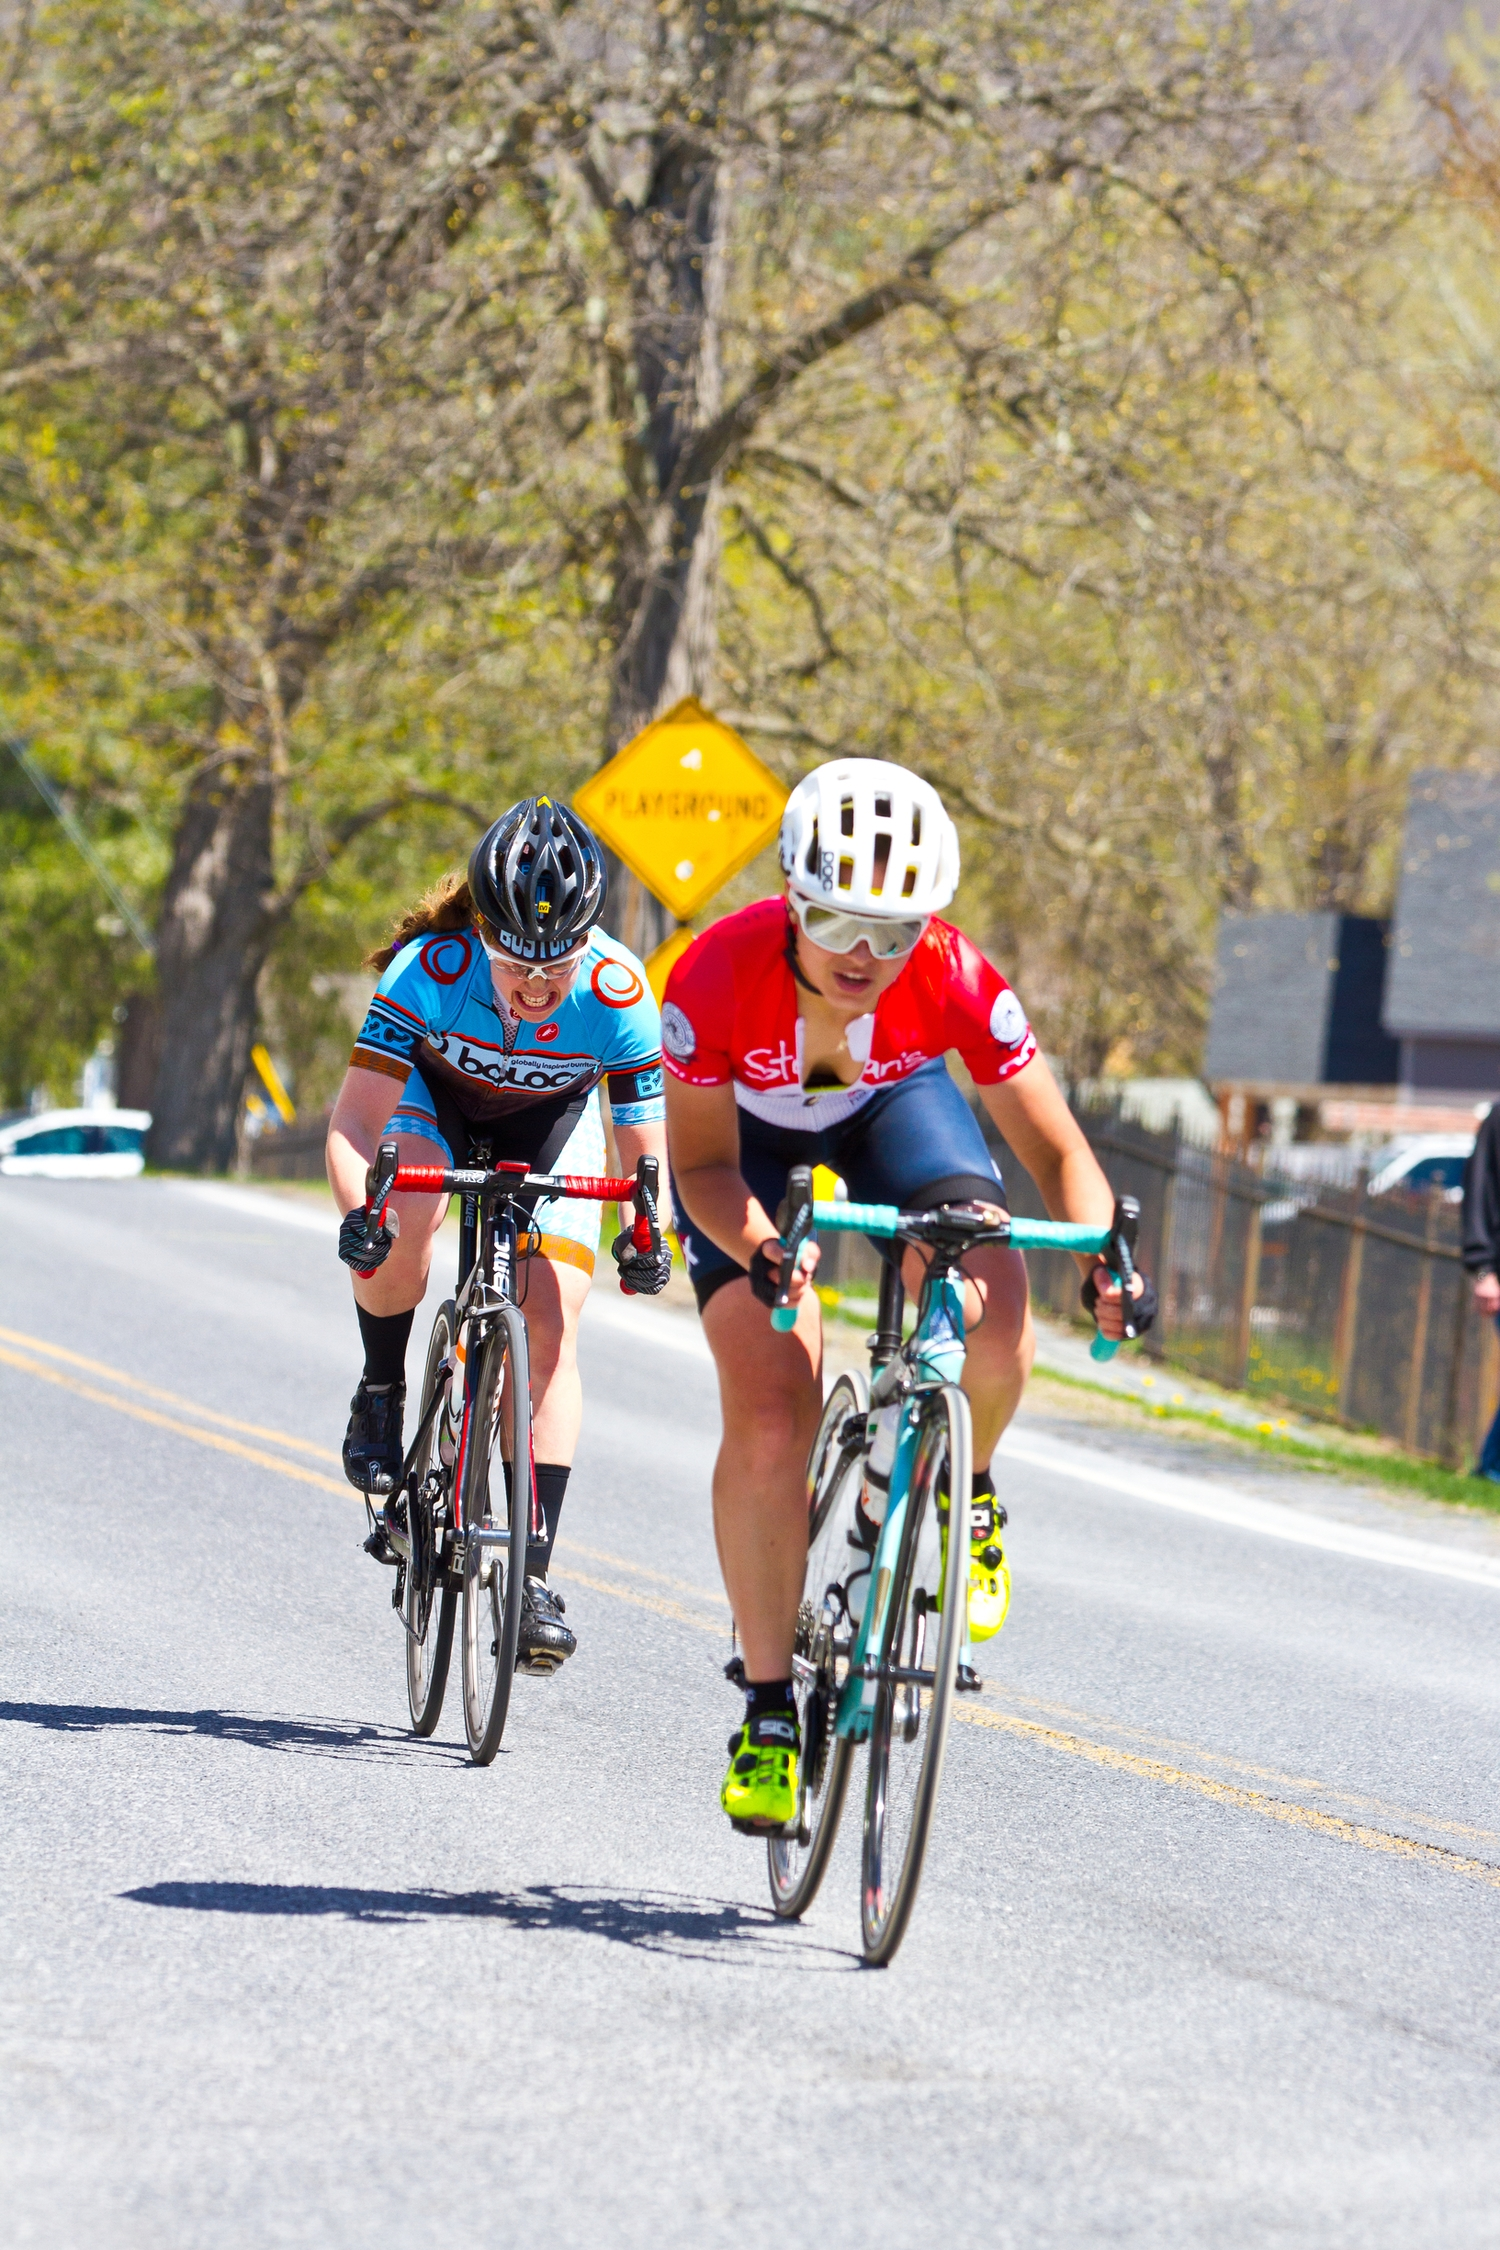 Hannah and Oksana Miller of Stan's NoTubes p/b Velo Cycling Classic battling it out in the final meters of the race